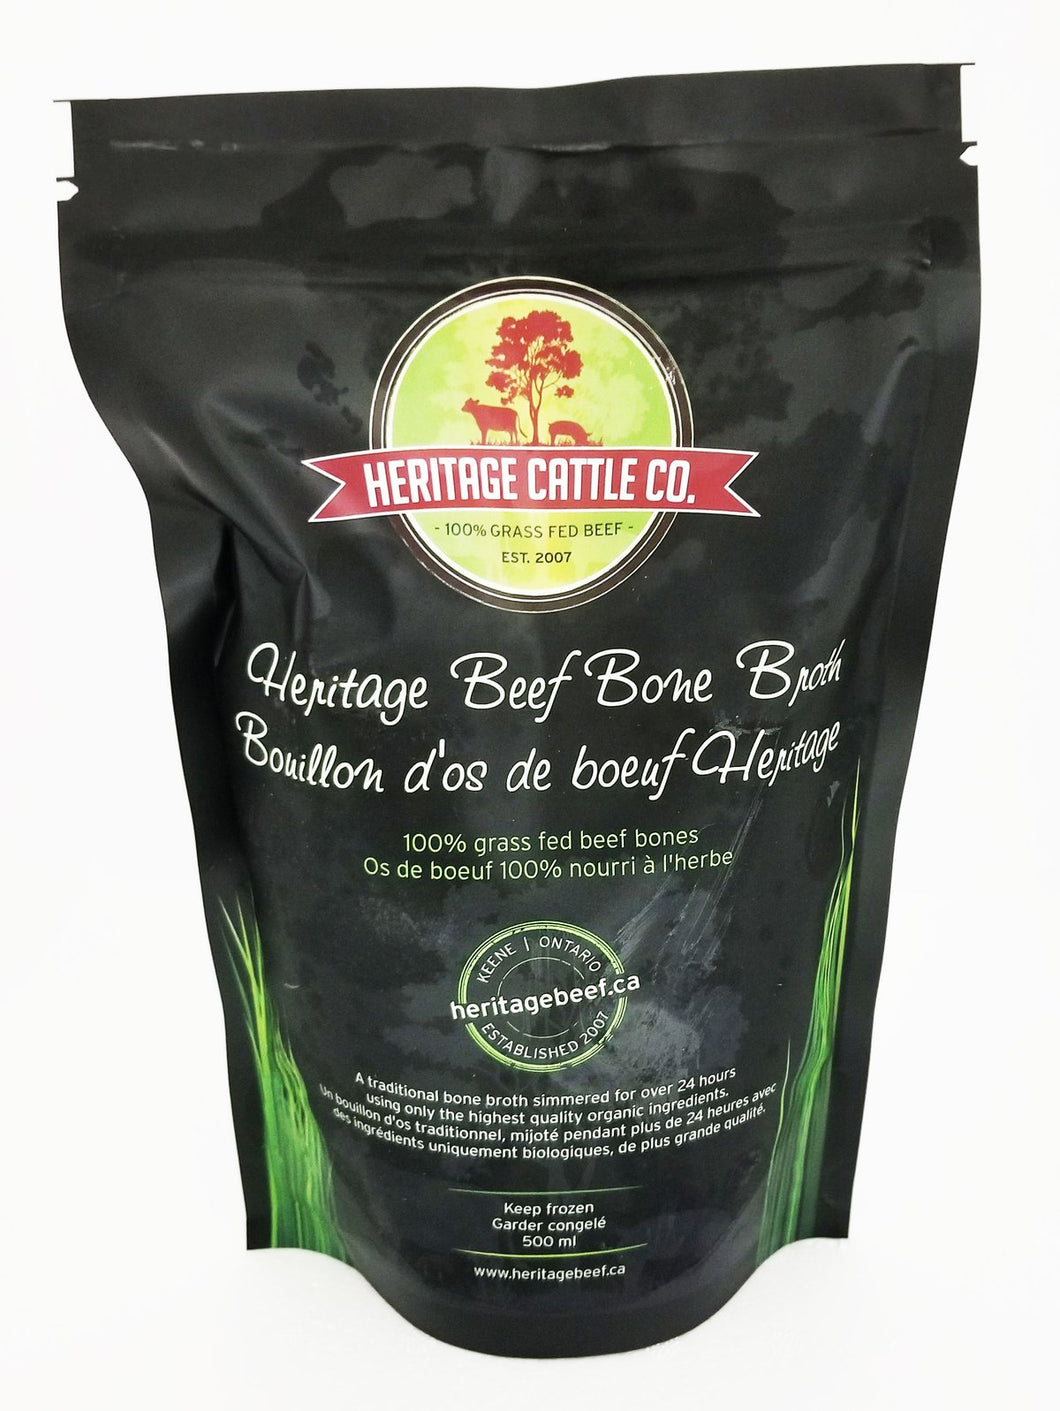 HERITAGE CATTLE CO, GRASS FED BEEF BONE BROTH